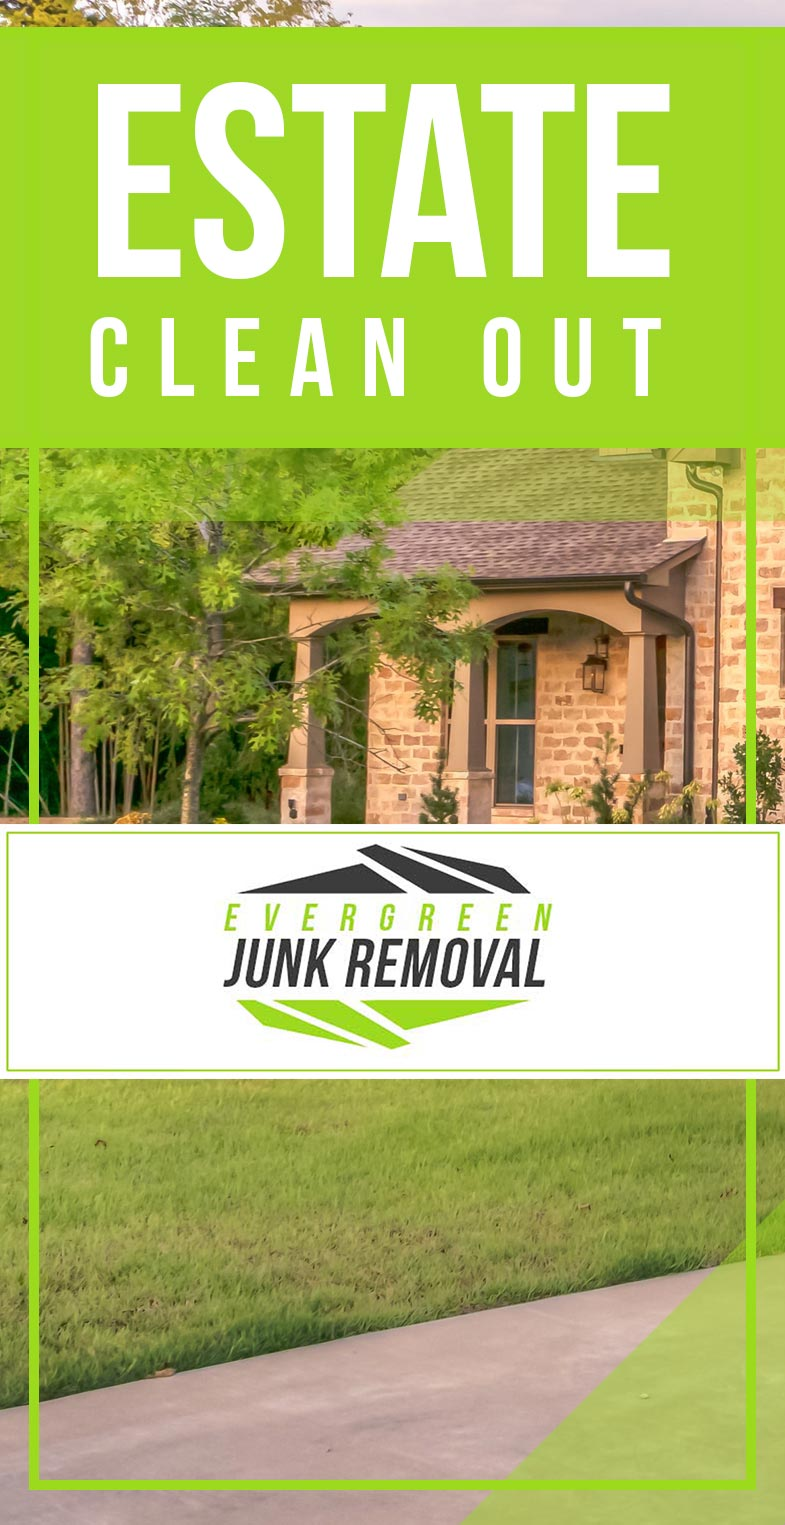 League City Property Clean Out